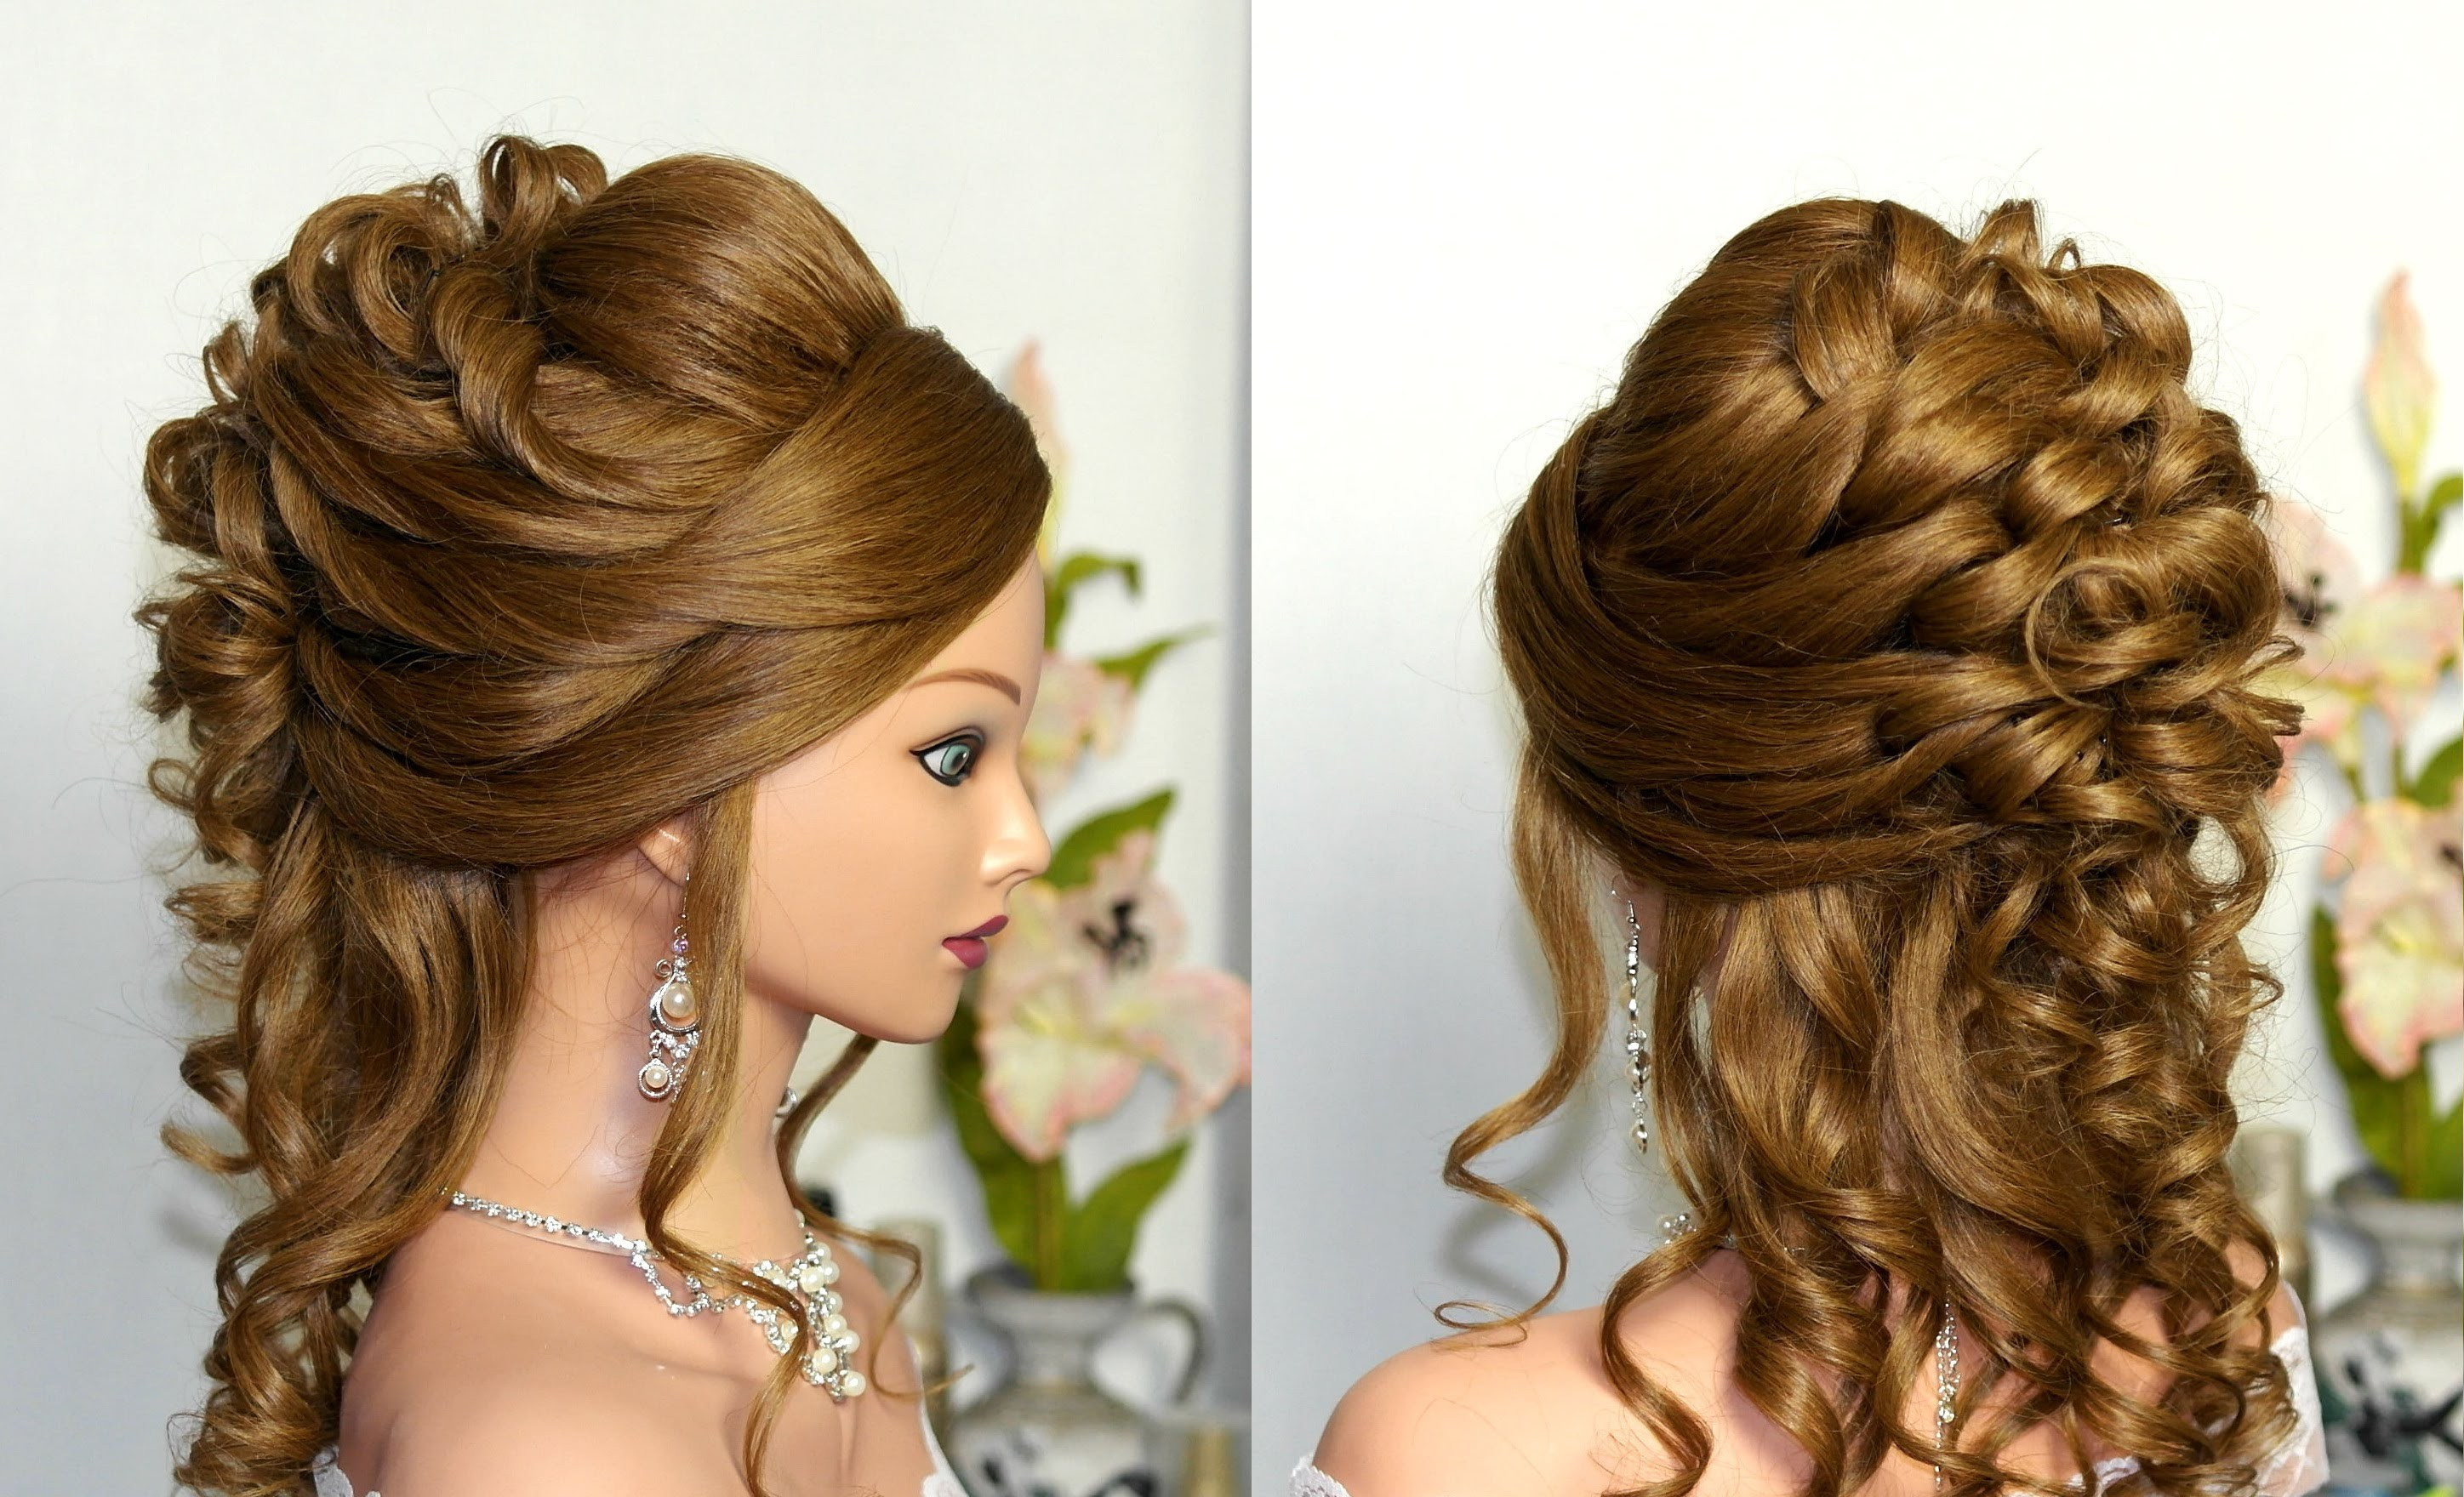 40 Gorgeous Wedding Hairstyles For Long Hair: Wedding Hairstyles For Long Hair Images Photos Pictures